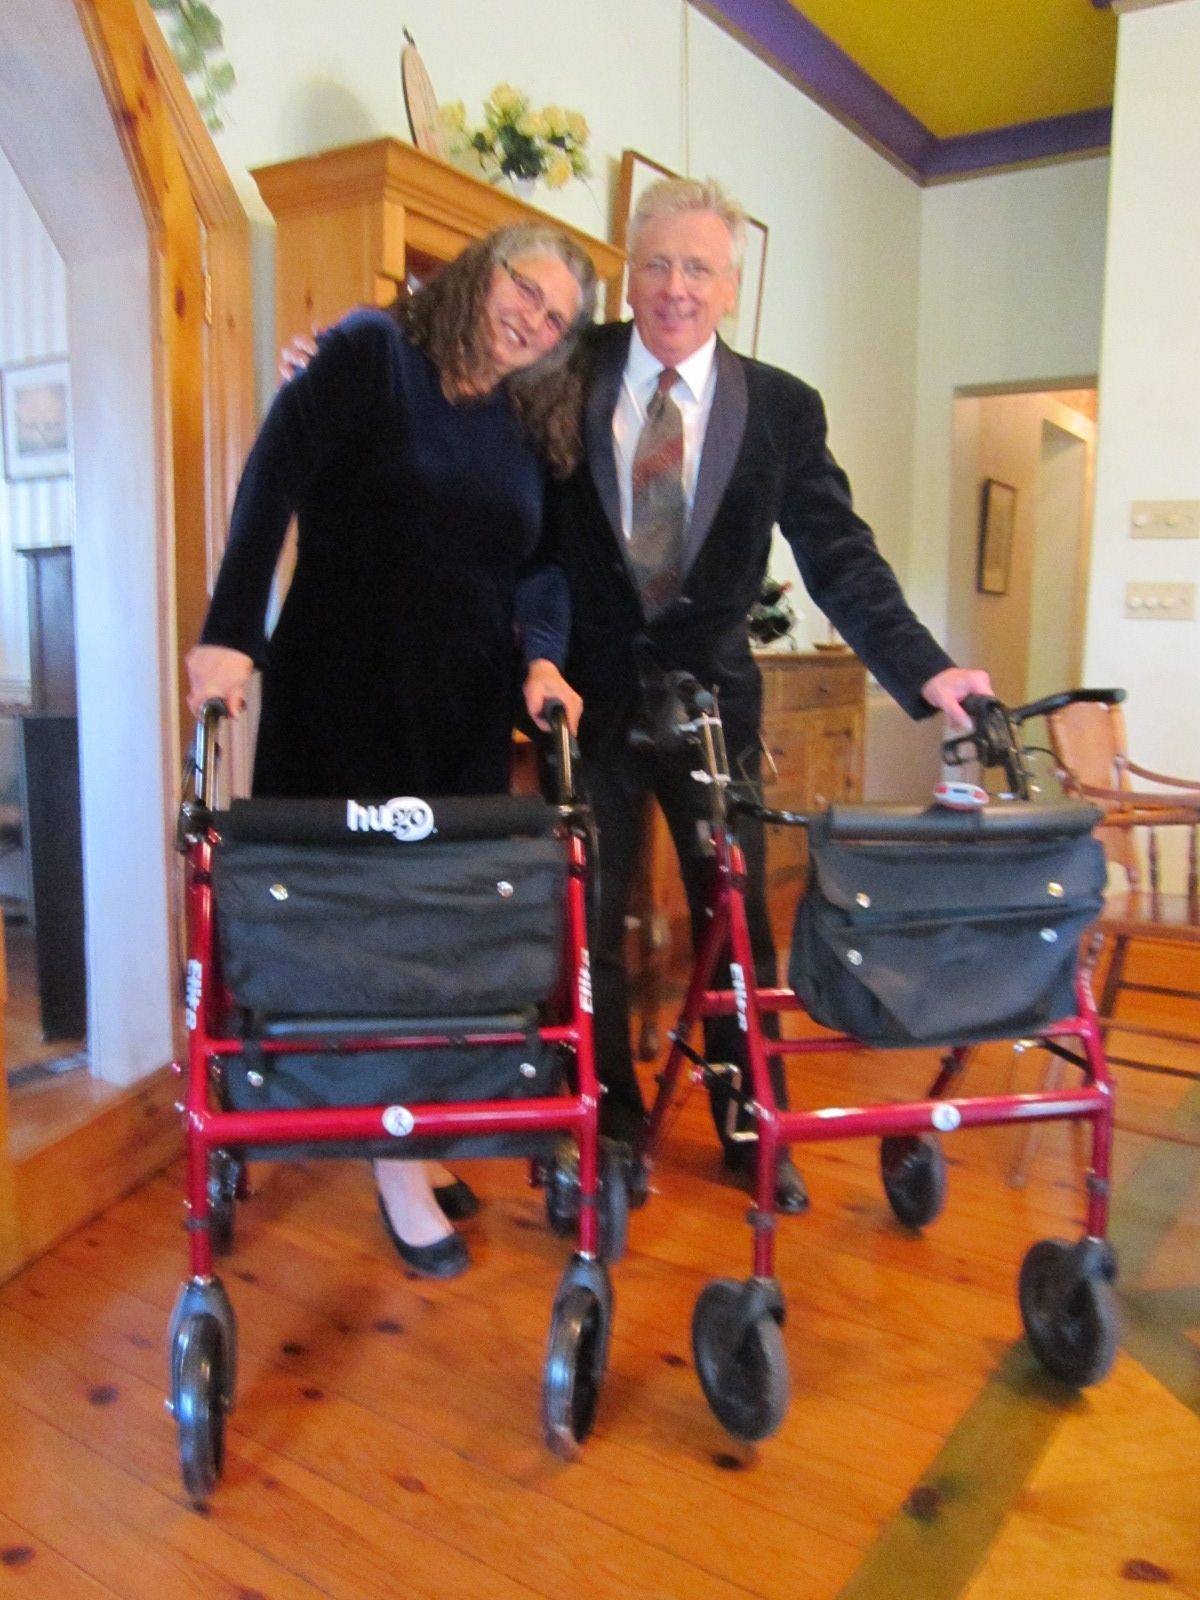 Bob Hardy and Alice Nicolaou in matching Hugo Elites. She uses her rollator to help recover from hip replacement surgery and lose the weight she put on during her period of inactivity.